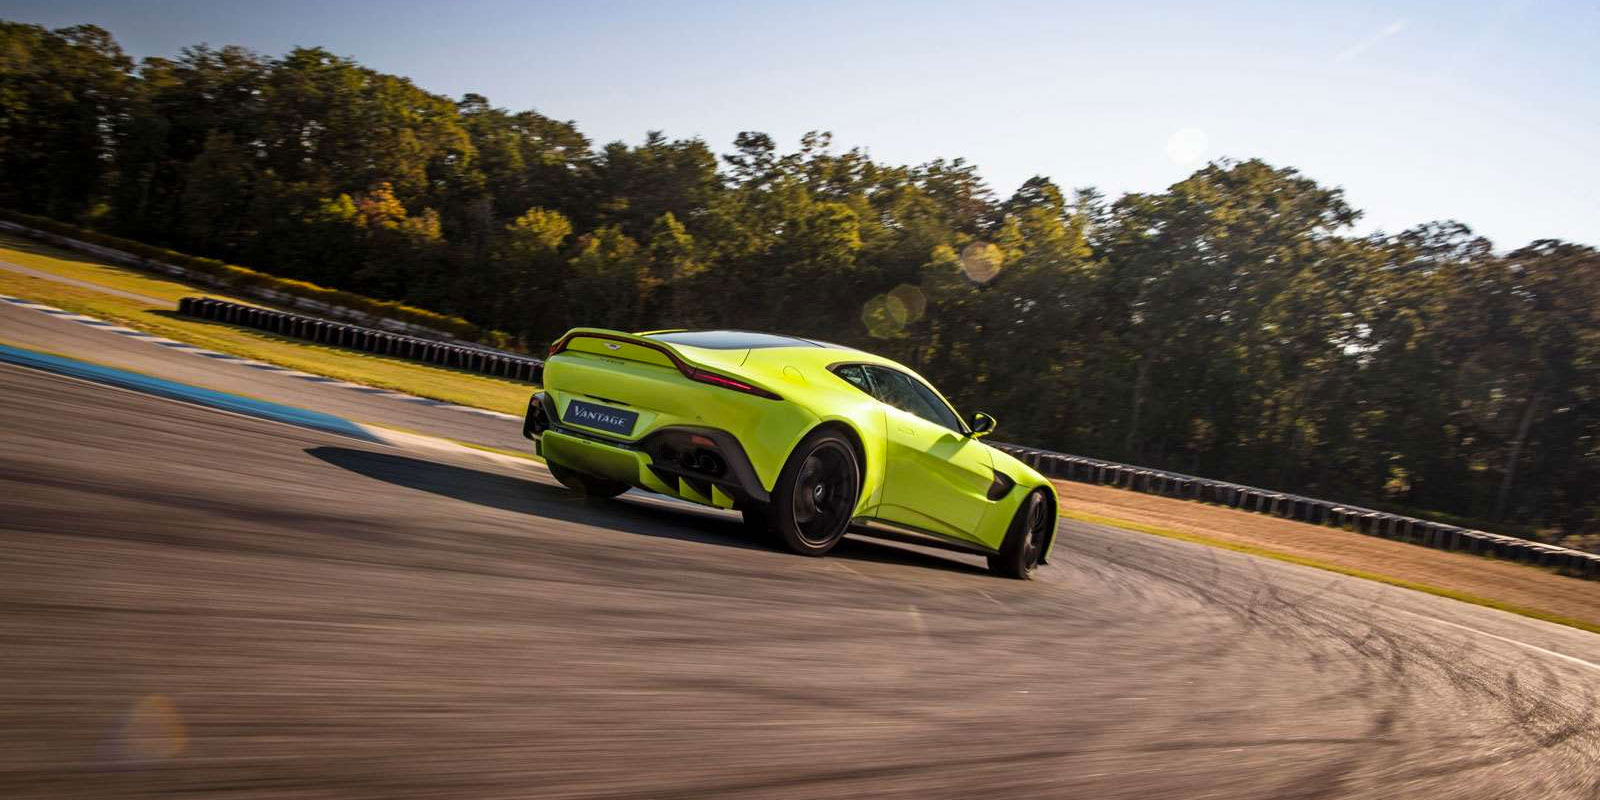 Aston Martin New Vantage - The Archetypal Hunter image 2